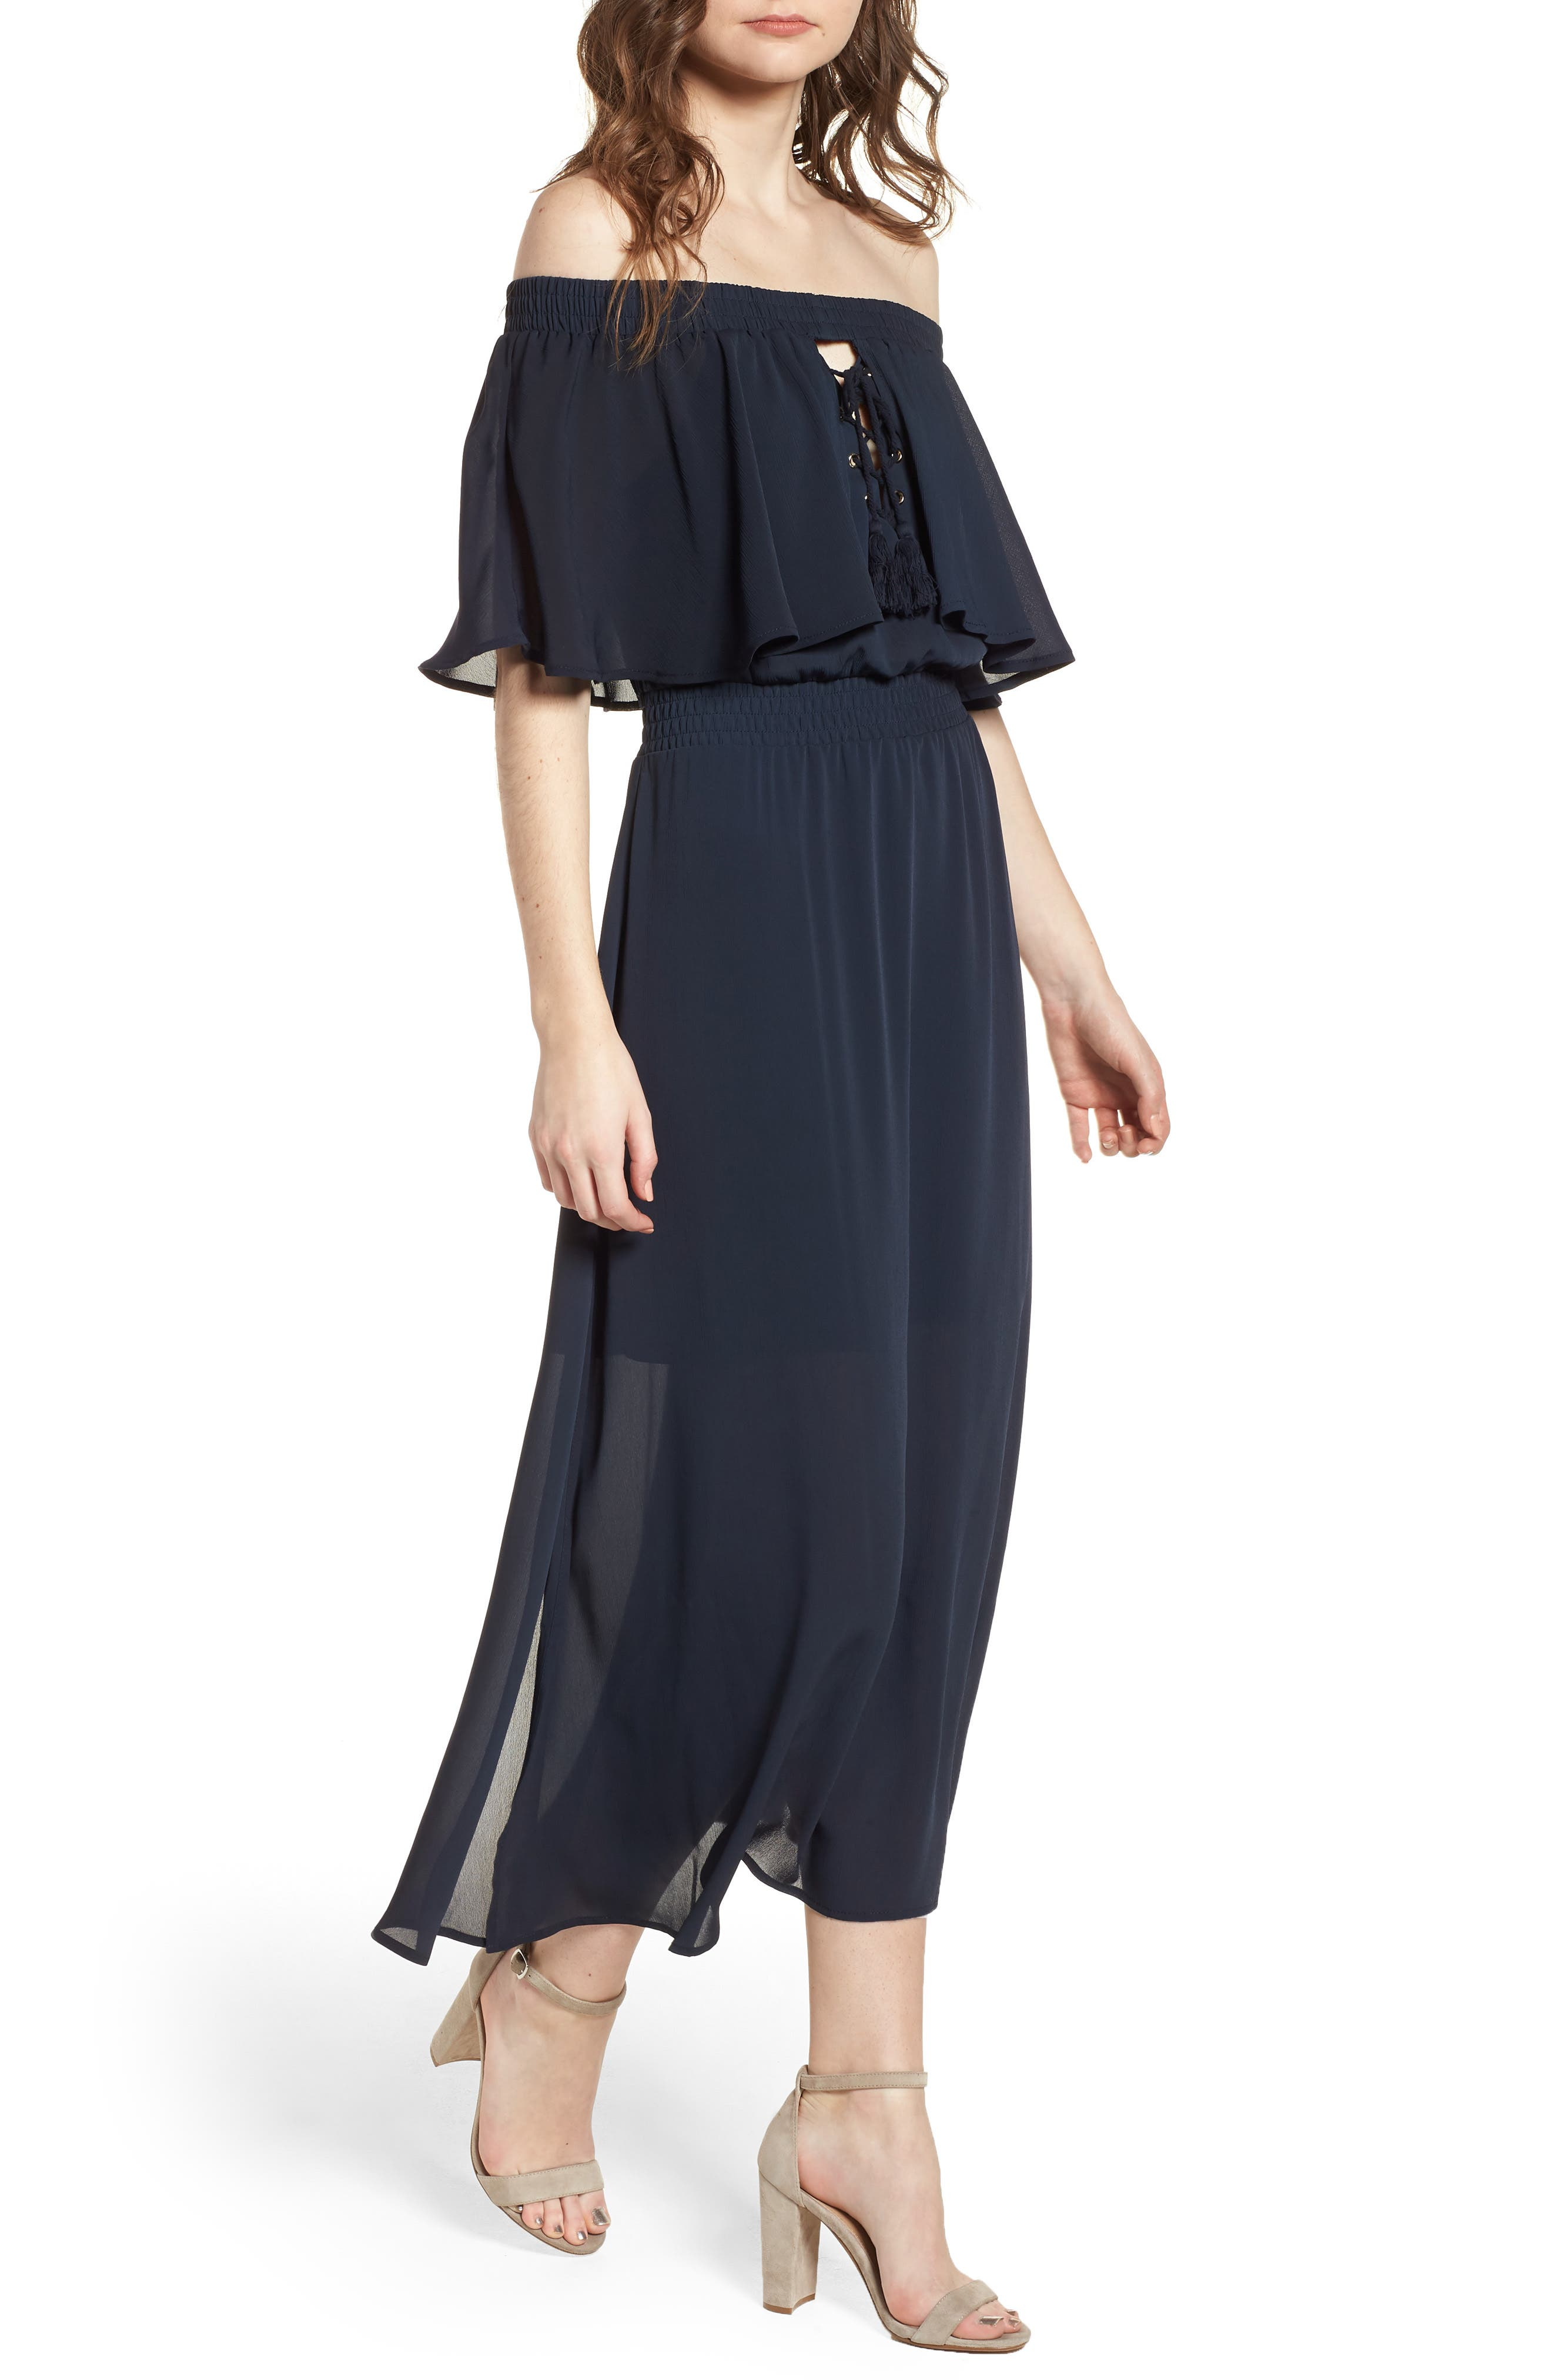 Touch the Sun Off the Shoulder Dress,                             Main thumbnail 1, color,                             Midnight